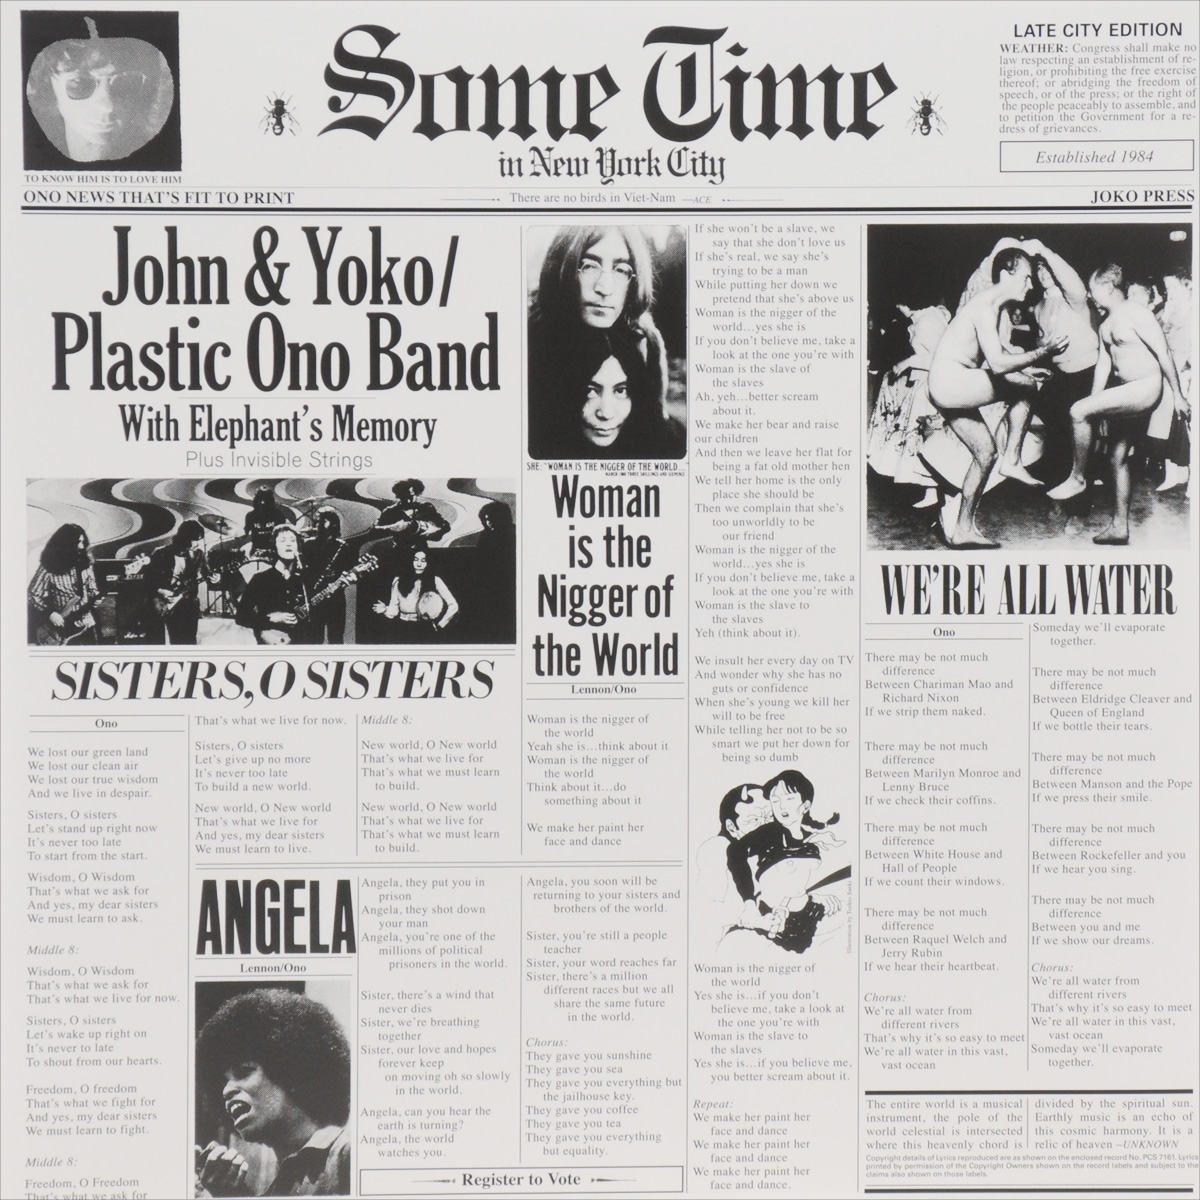 John & Yoko,The Plastic Ono Band,Elephant's Memory John & Yoko / Plastic Ono Band With Elephant's Memory. Some Time In New York City (2 LP) 6 speed cable band switch 25f